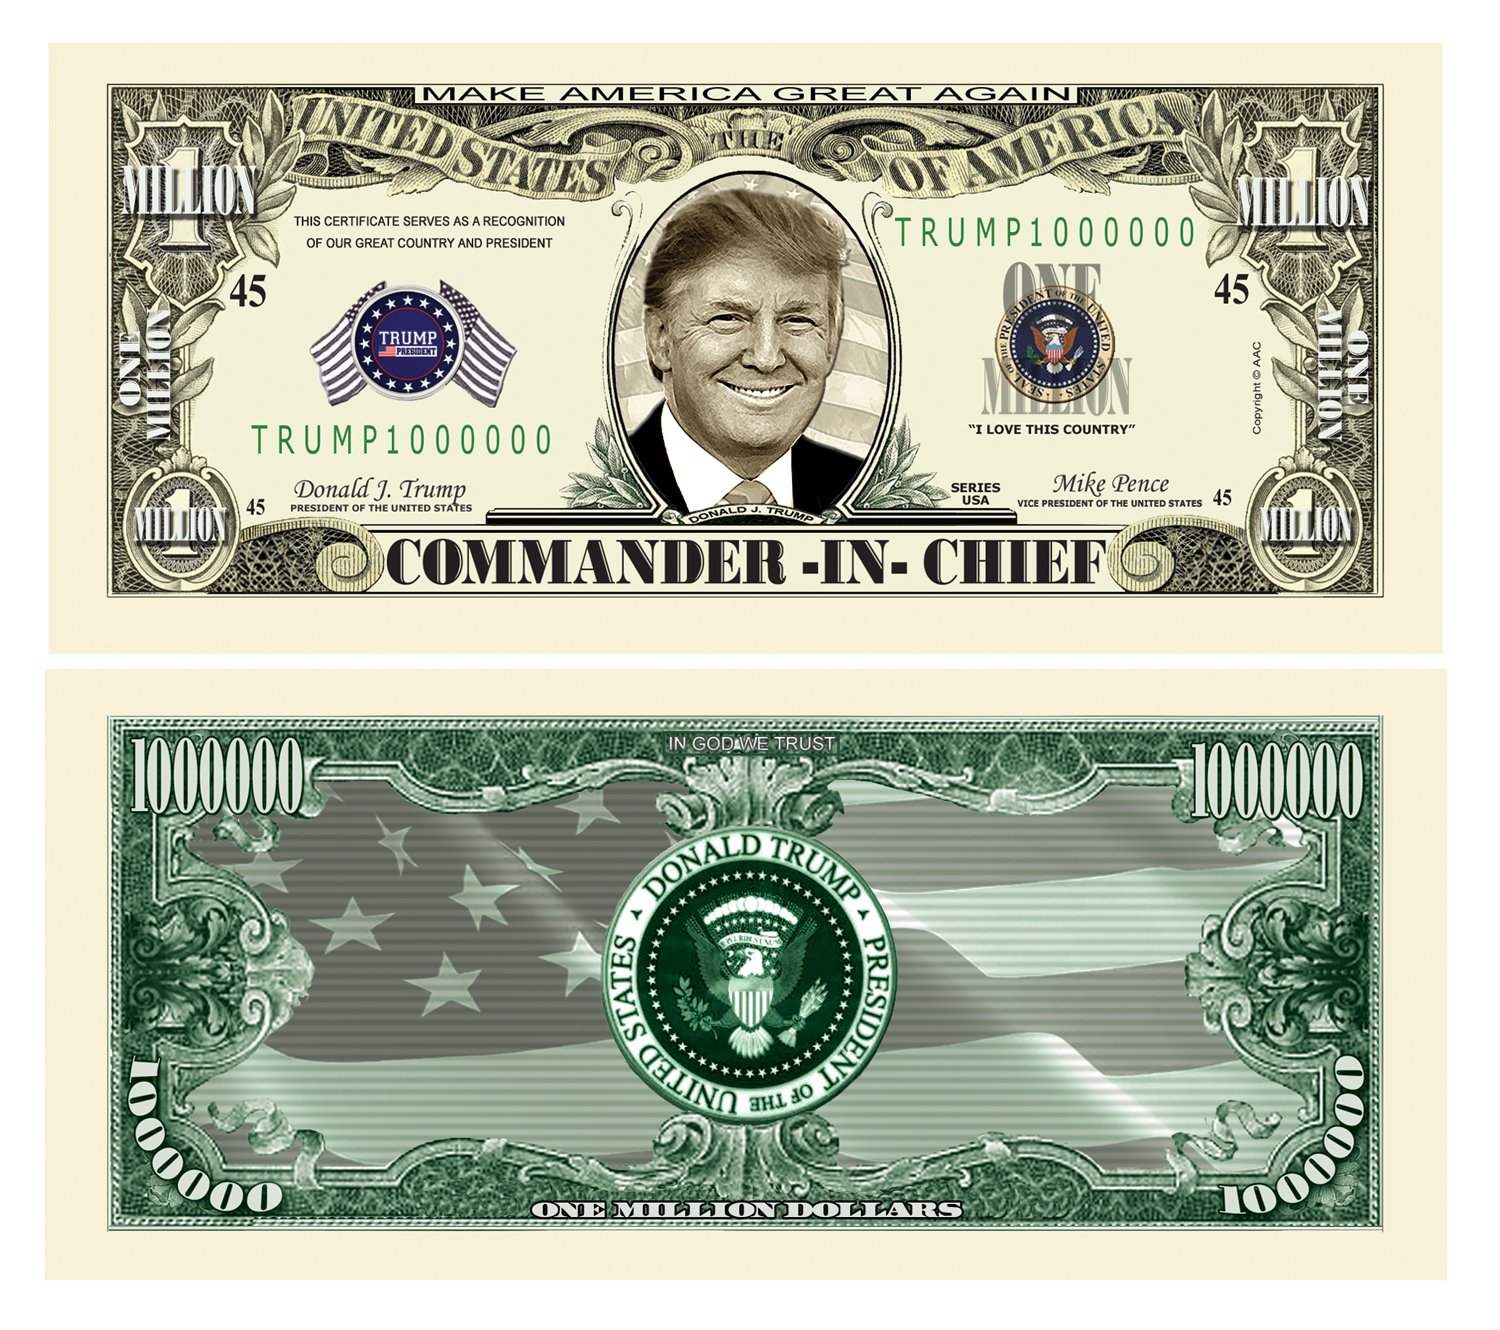 American Art Classics Pack of 100 - Donald Trump Commander in Chief Presidential Limited Edition Million Dollar Bill by American Art Classics